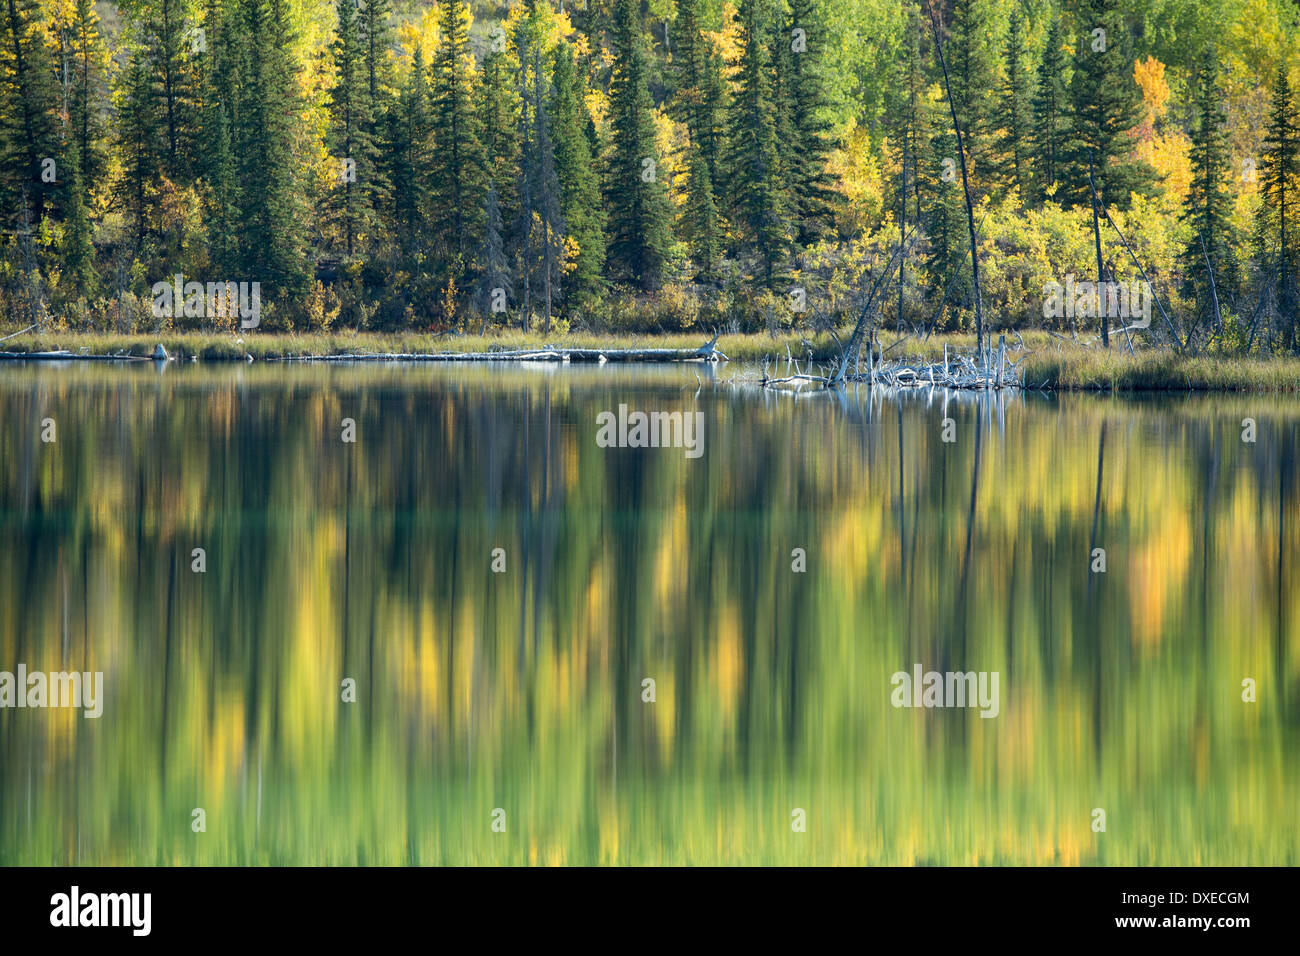 Autumn colours nr Pelly Crossing, Yukon Territories, Canada - Stock Image